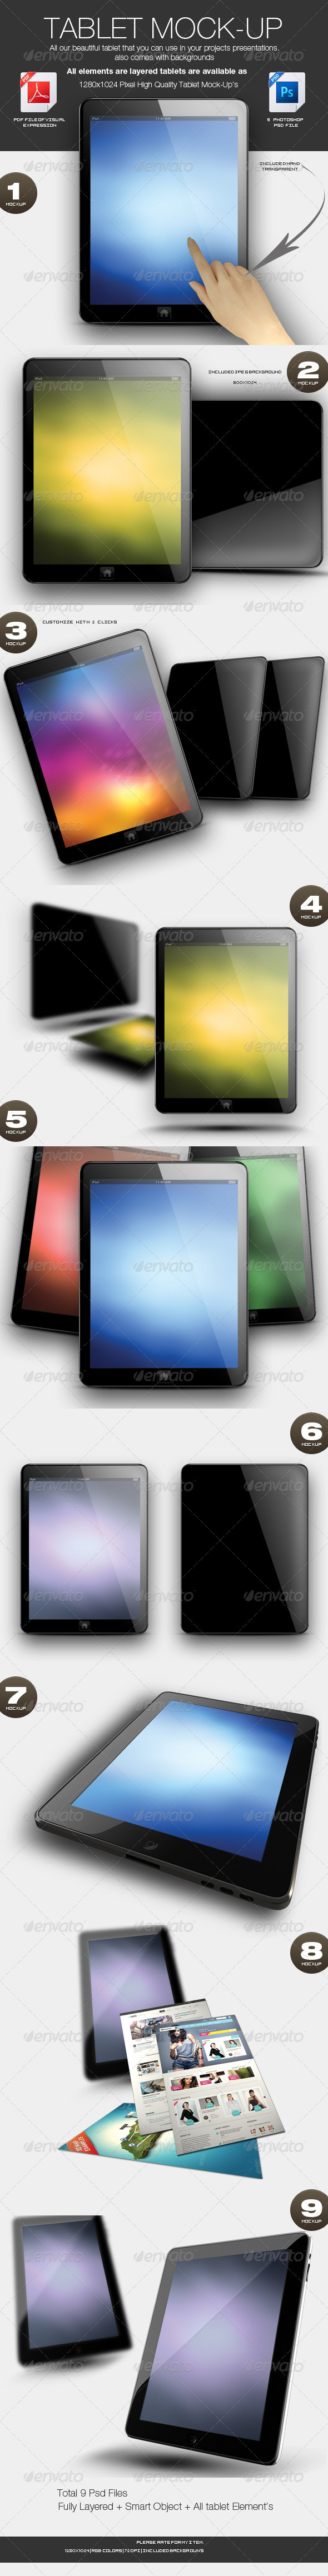 GraphicRiver Photorealistic Tablet Mock-up 3544628